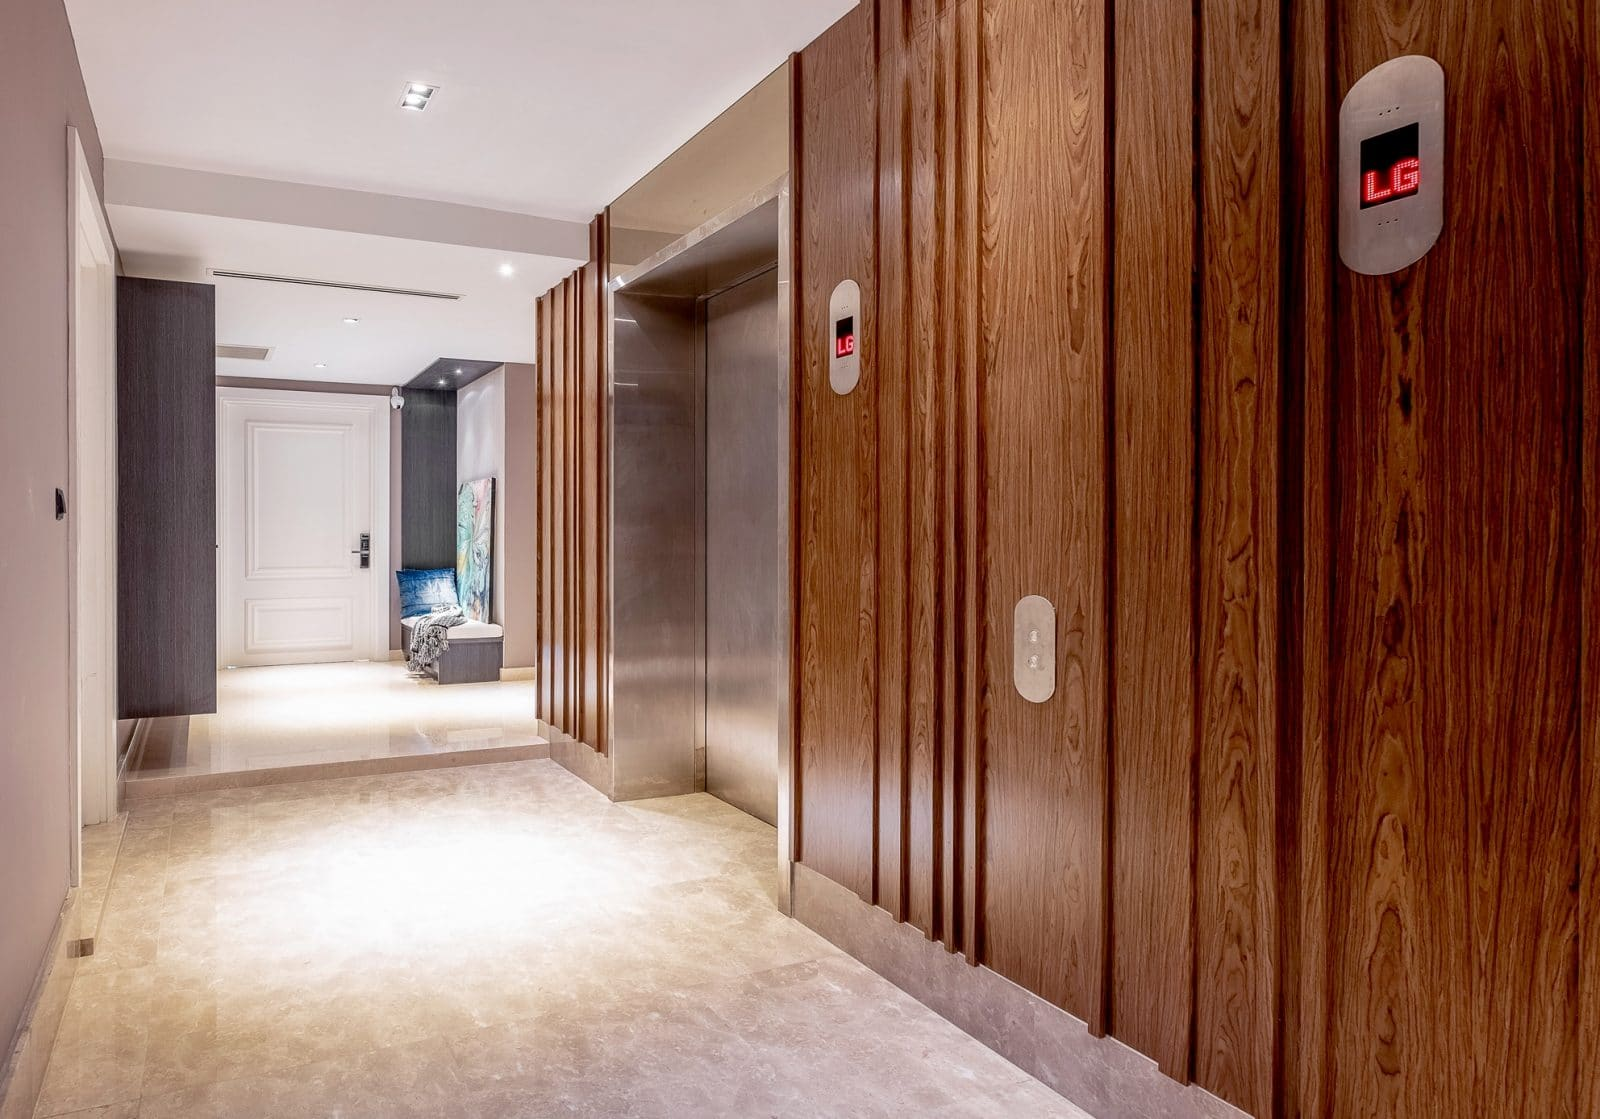 Above: walnut wood wall panels on the personal lift corridor outside.